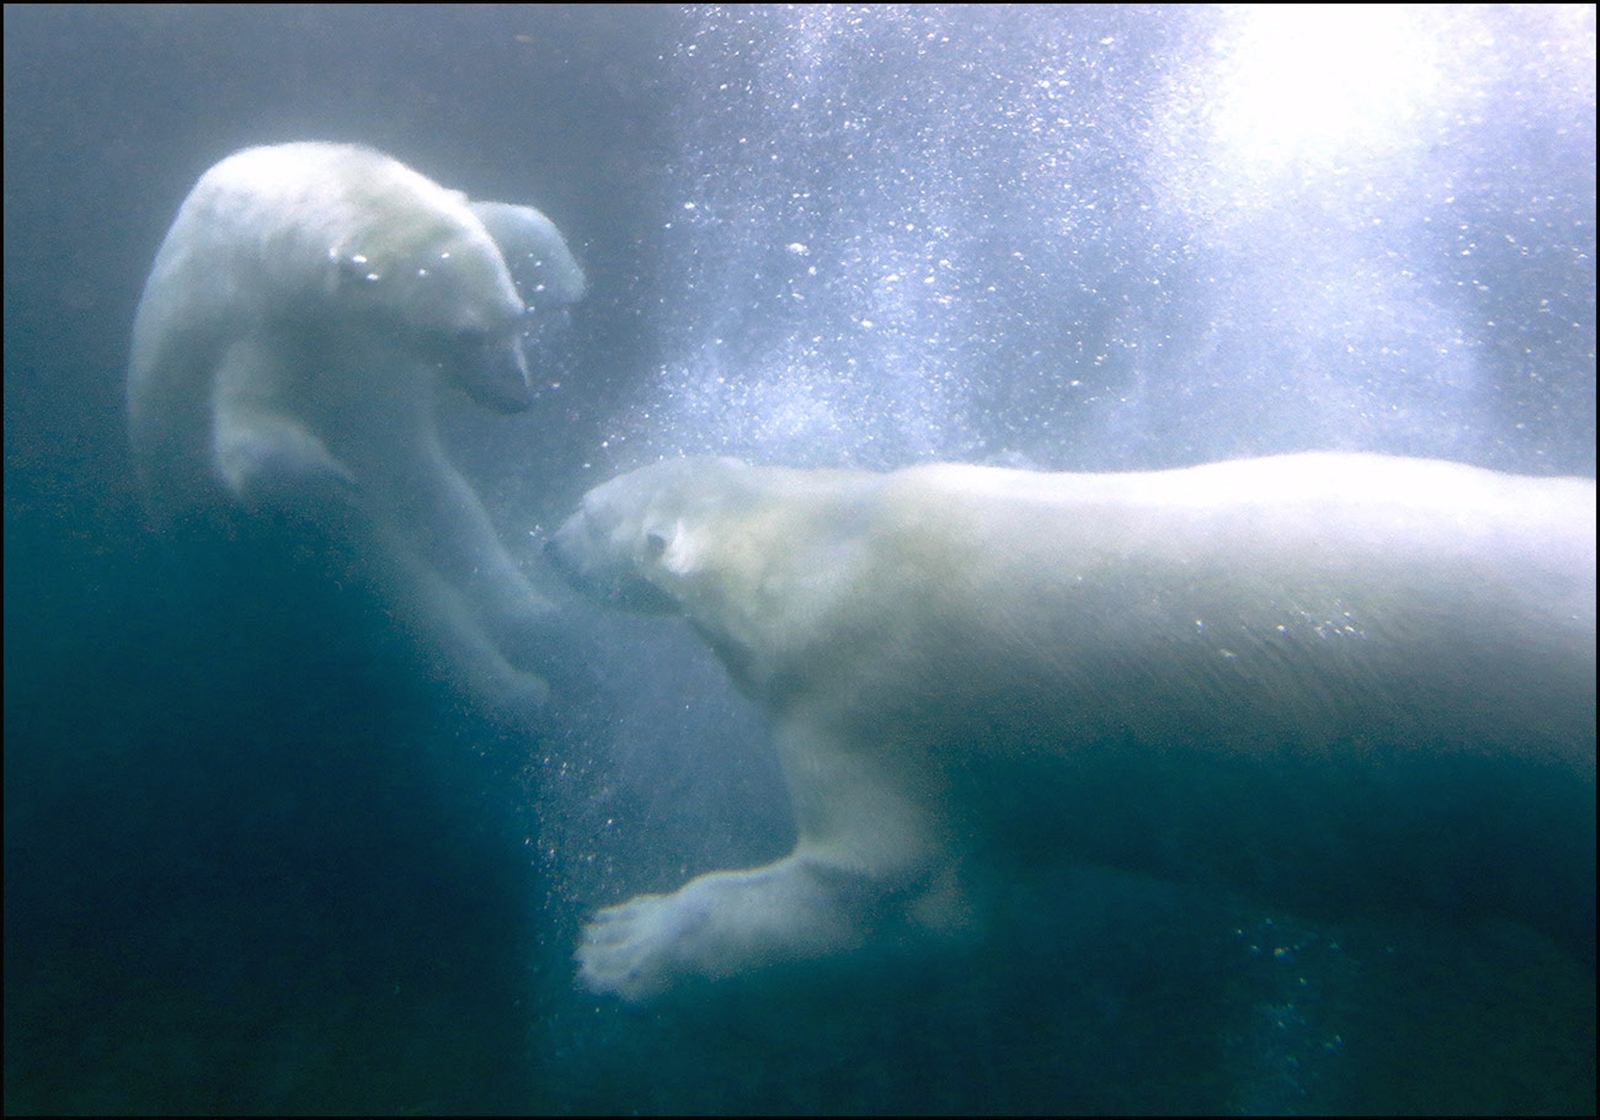 The Buffalo Zoo recently introduced the polar bears Luna, left and Sakari, right, in time for St. Valentine's Day. They are  frolicking in their shared area at the zoo.